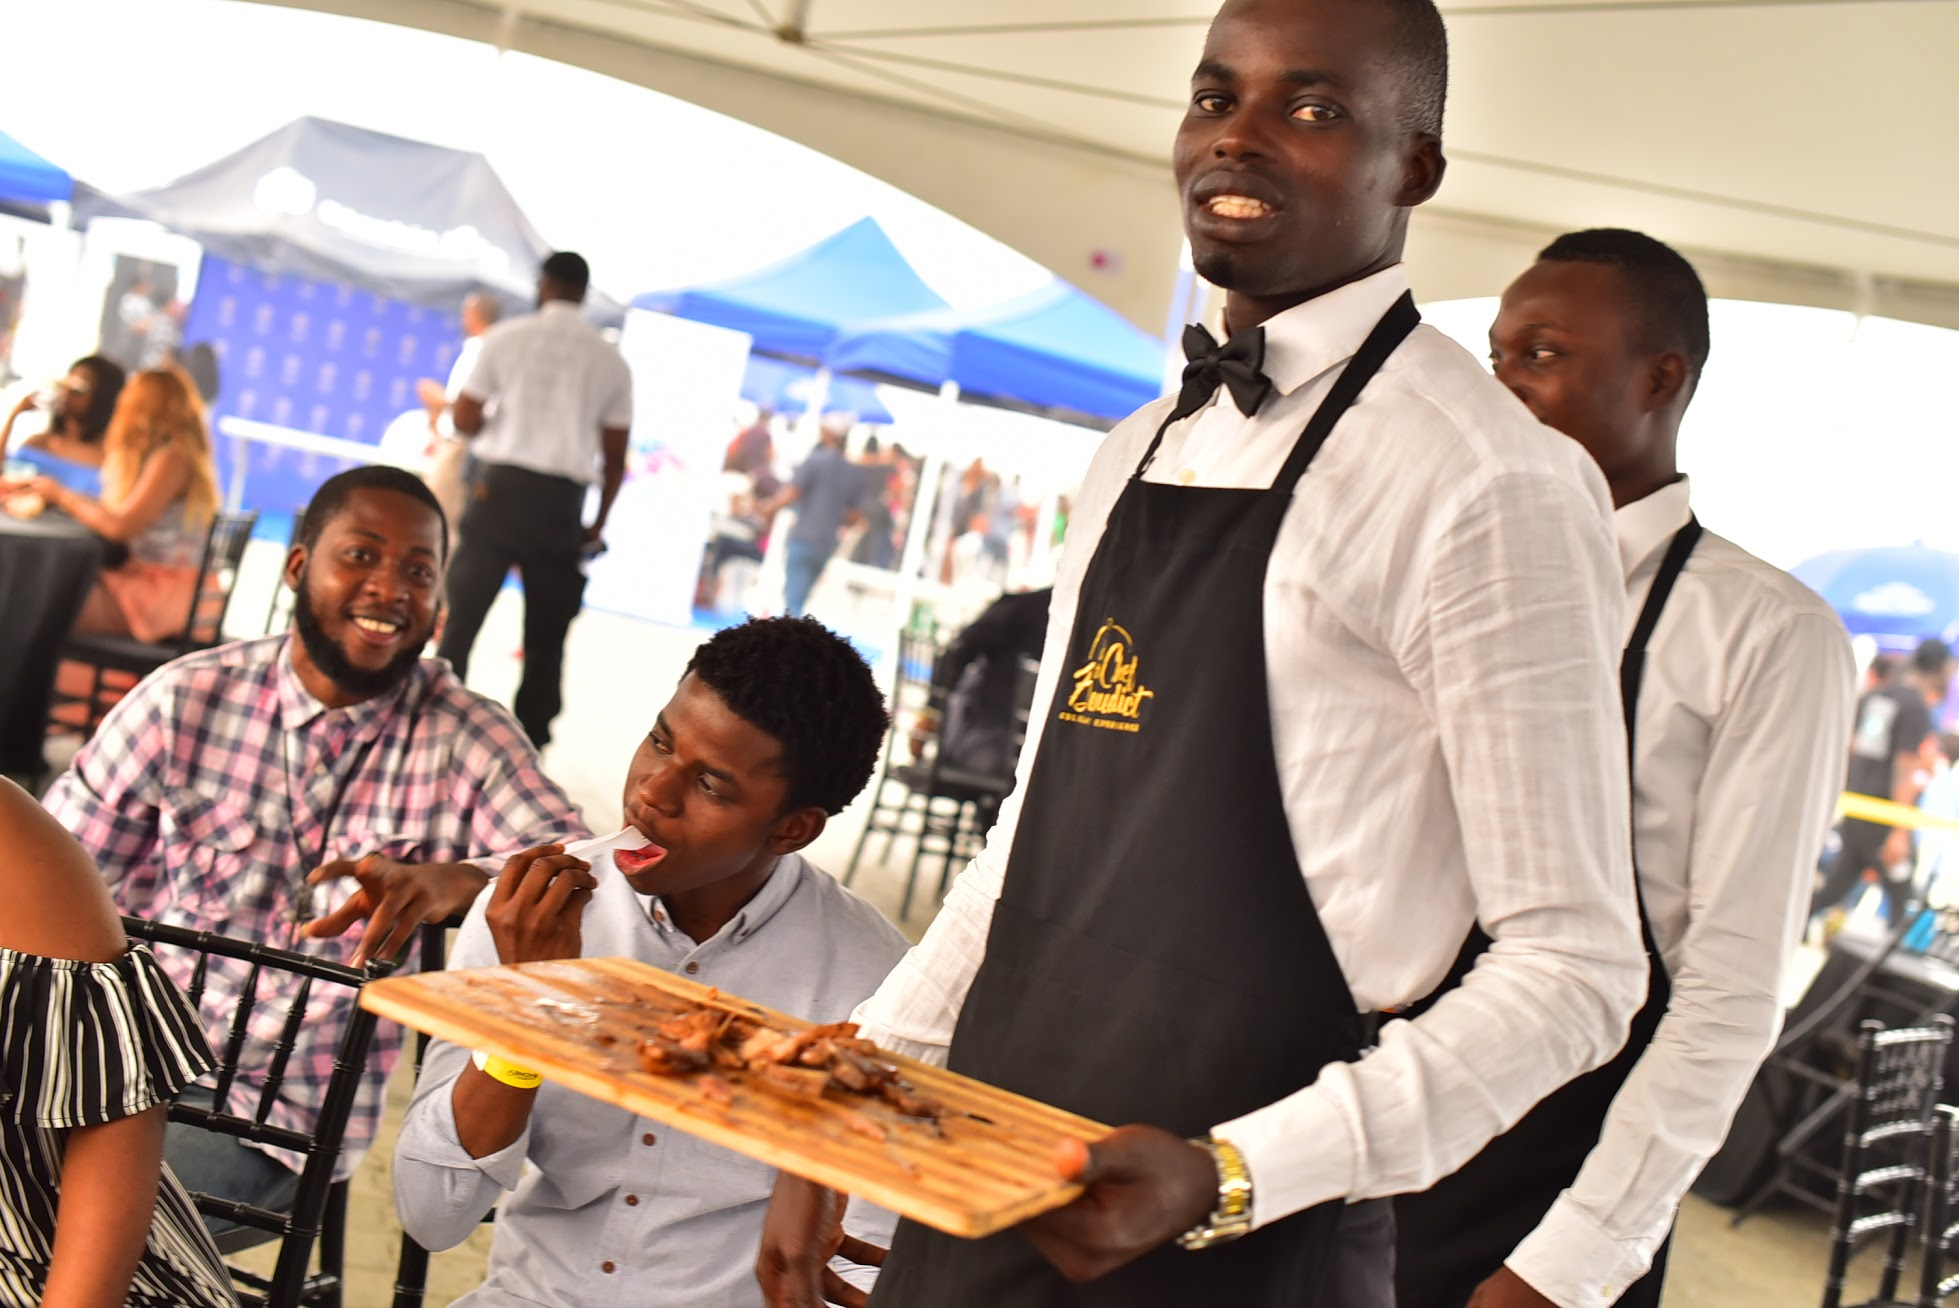 Eat Drink Festival / Photo via Star.ng